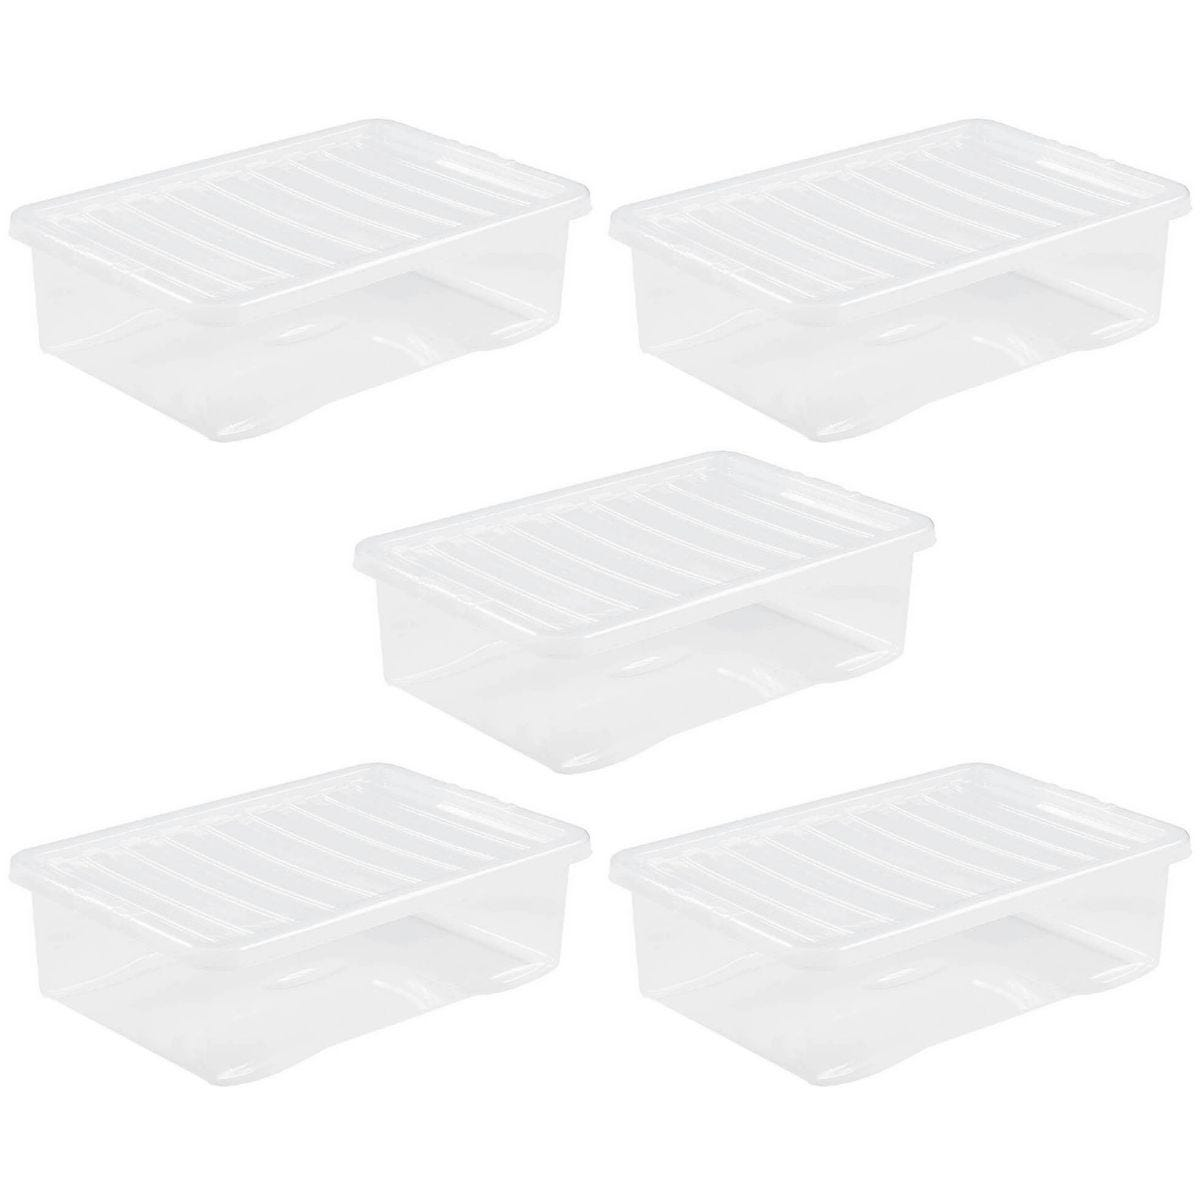 Wham Crystal Clear Under Bed Storage Box with Lid 32L - Set of 5